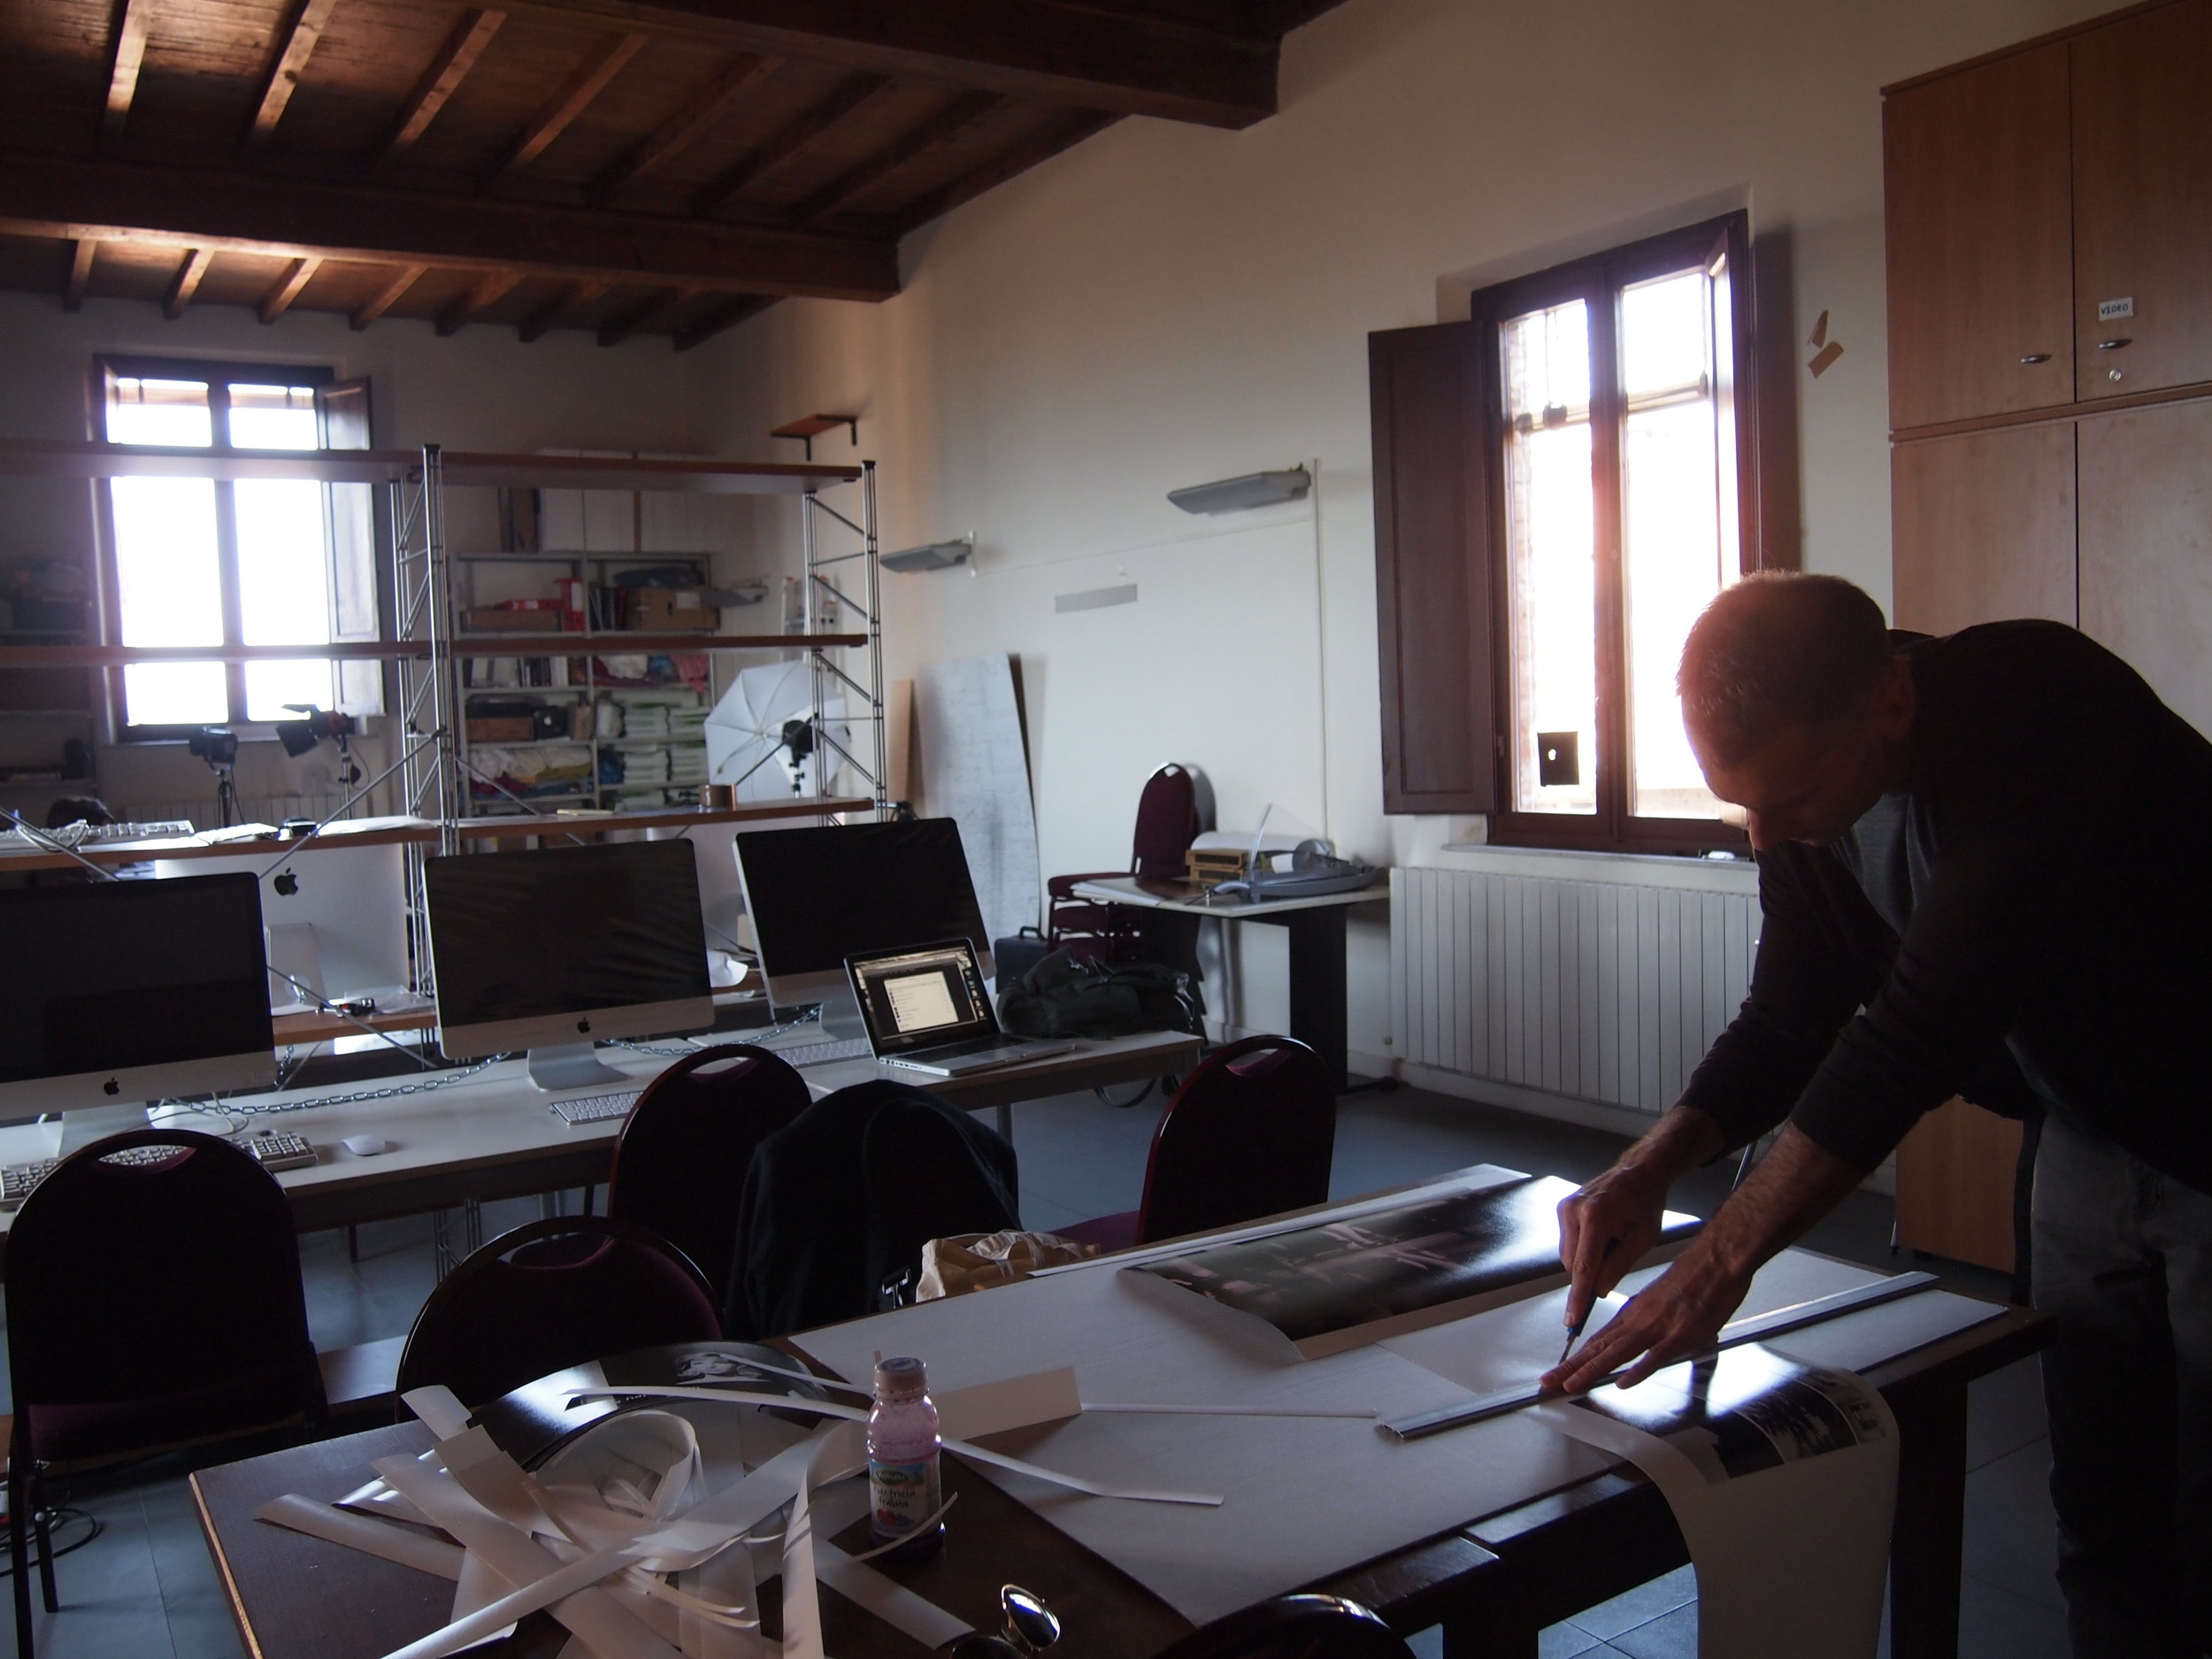 printing-and-preparing-stills-from-leclisse_8120123925_o.jpg